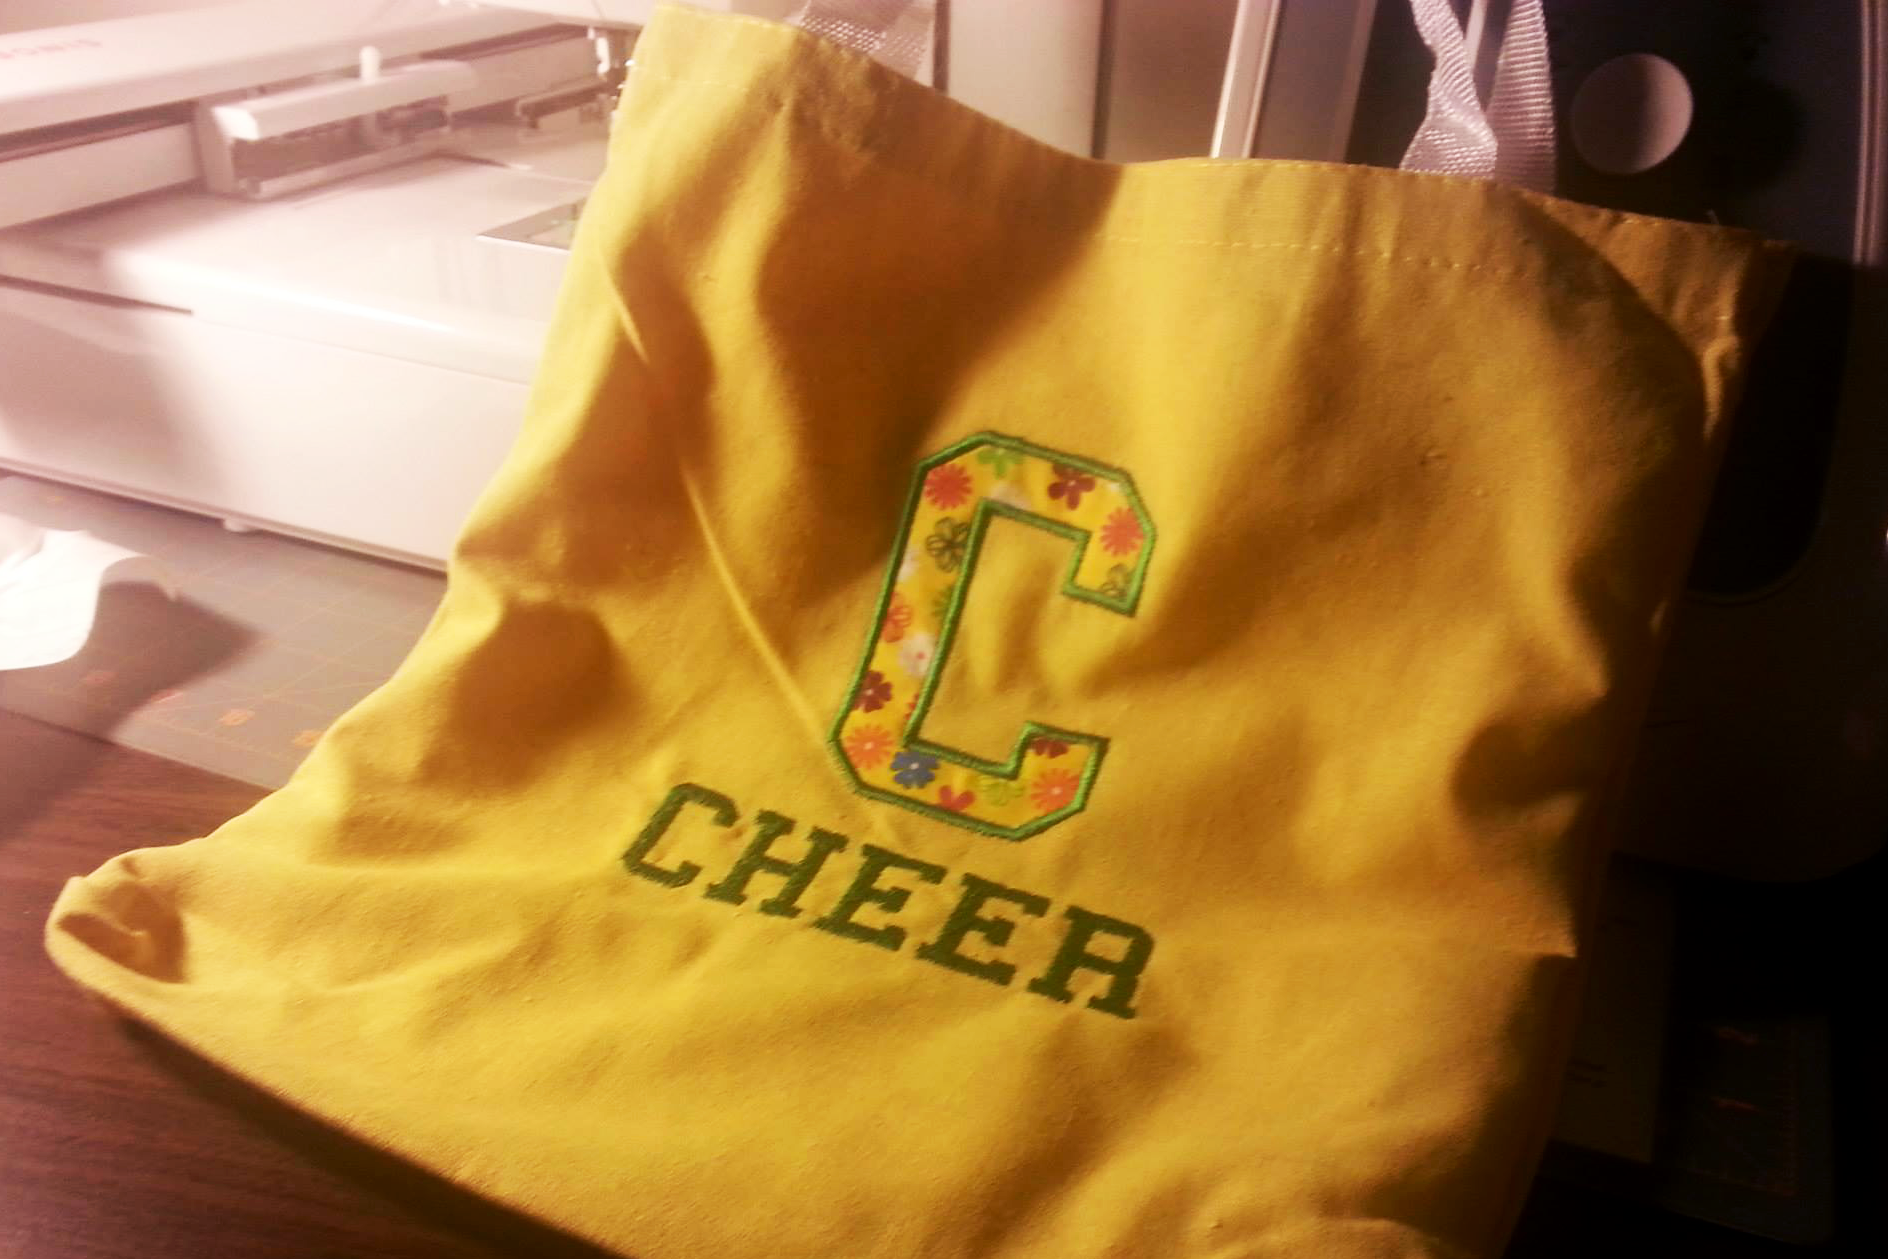 C for Cheer Applique Embroidery Design example image 2